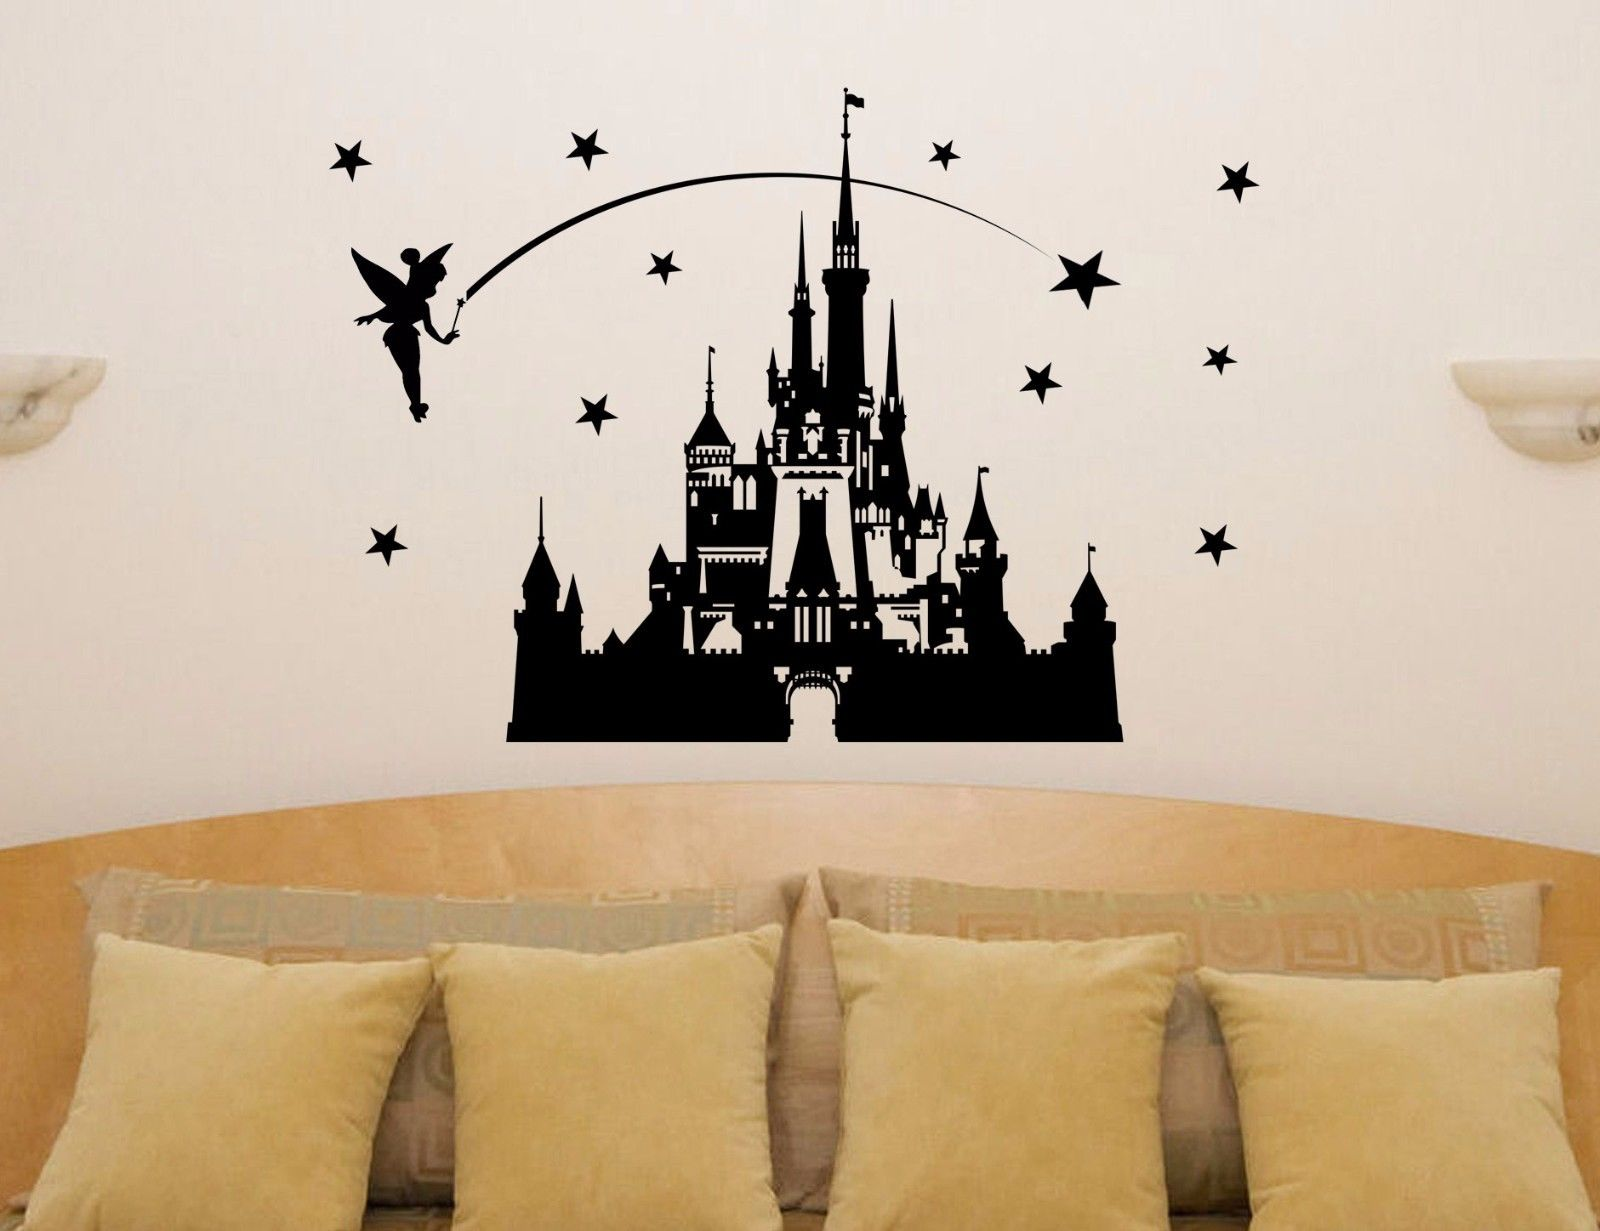 Karton Castle Fairytale Princess Tinkerbell Wall Art Decal Sticker - Indretning af hjemmet